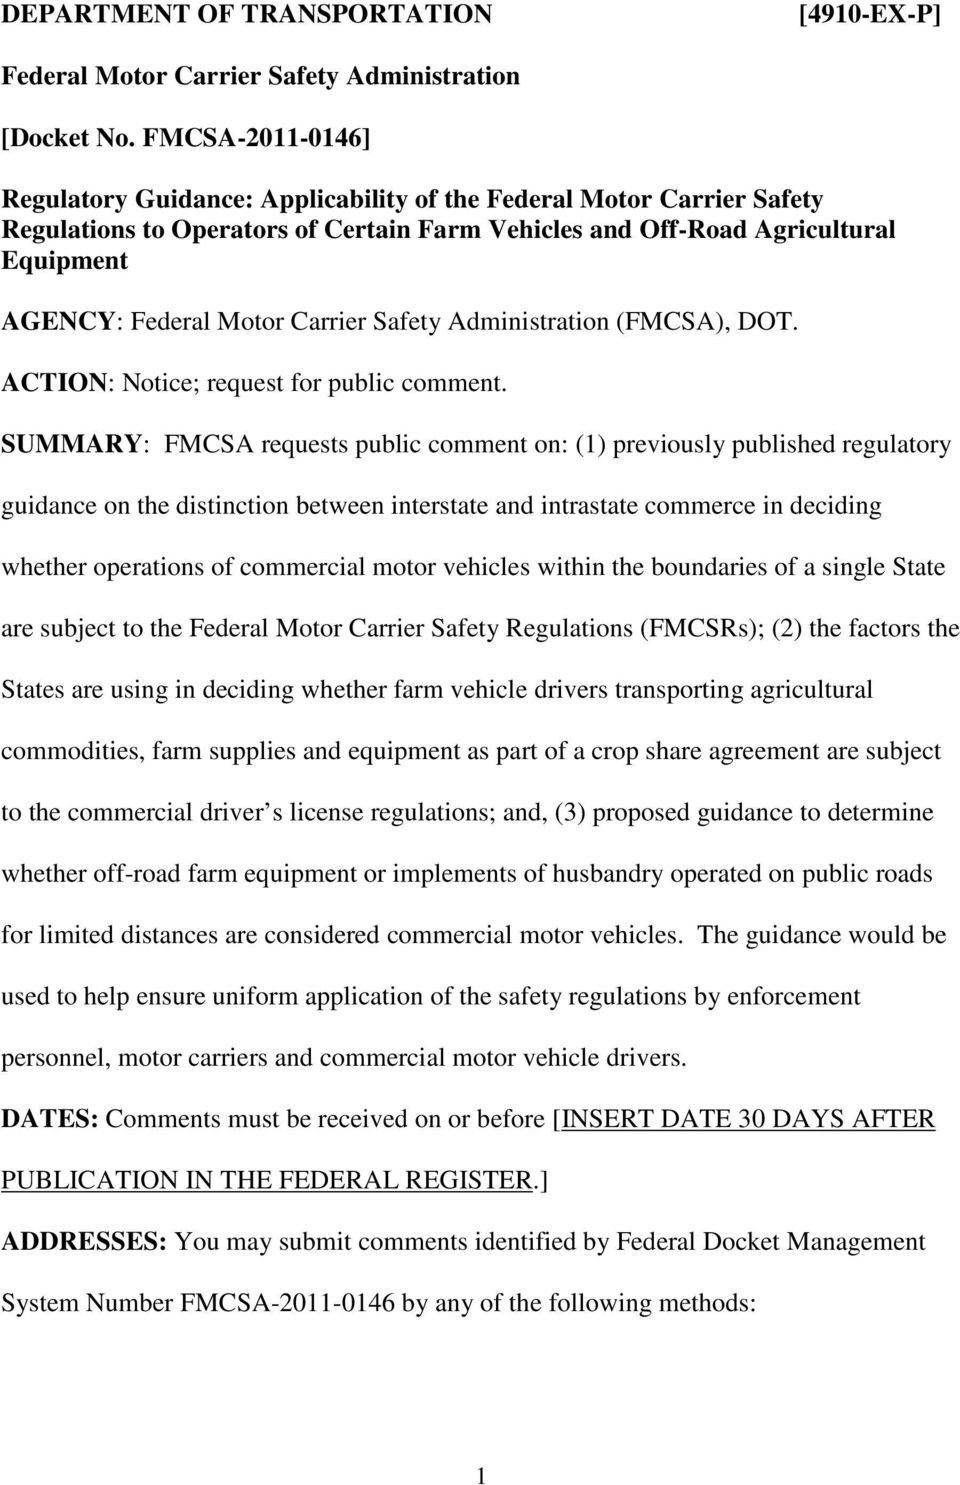 Carrier Safety Administration (FMCSA), DOT. ACTION: Notice; request for public comment.